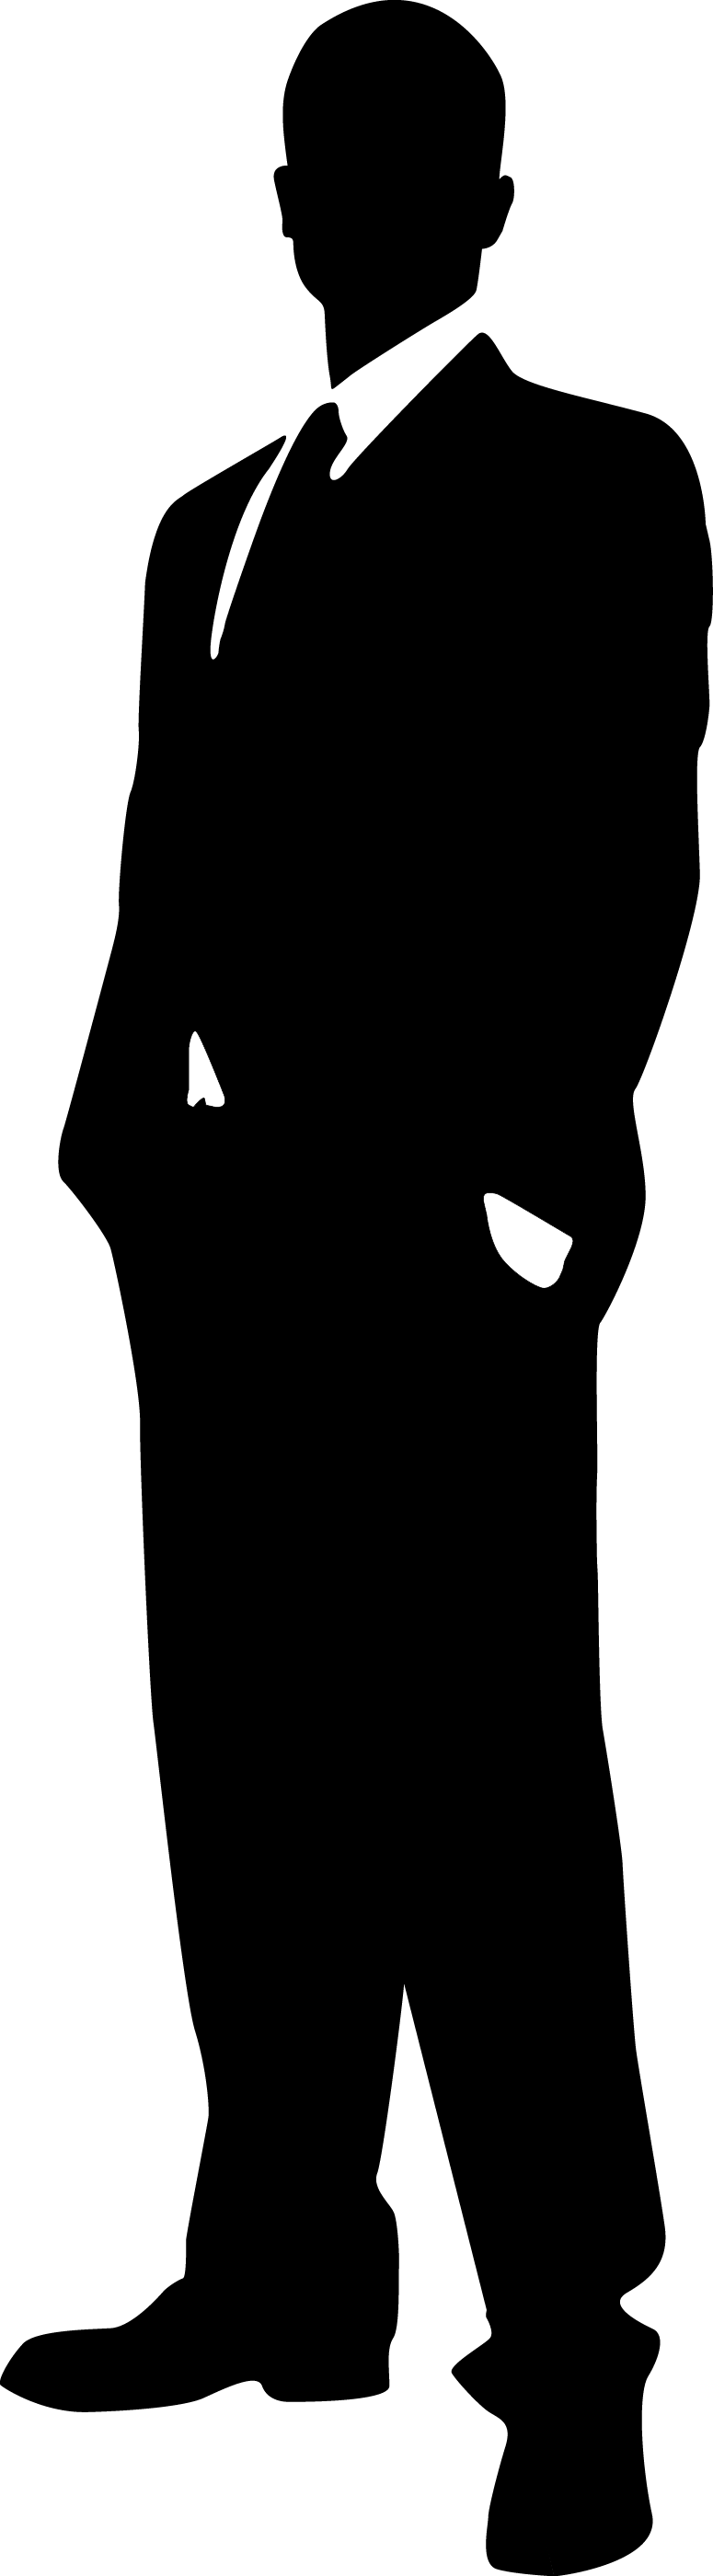 Unknown-clipart-man-silhouette-19